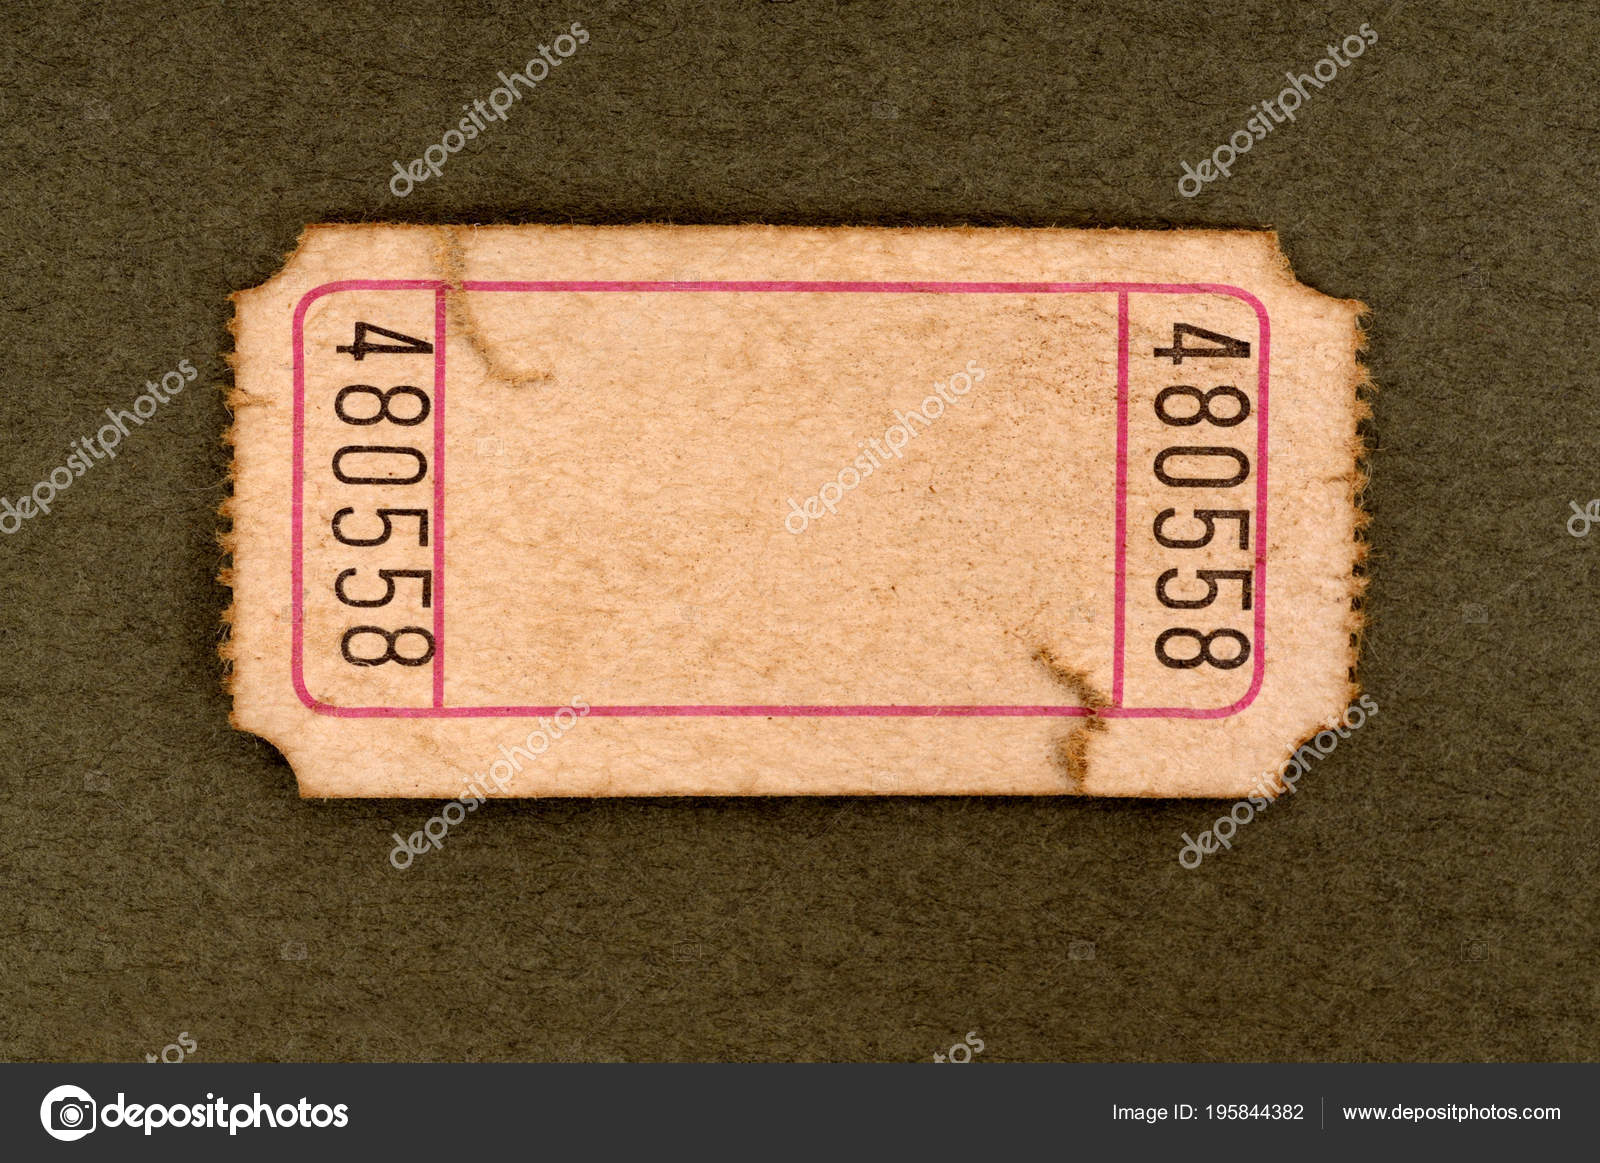 old torn blank movie raffle ticket mottled brown paper background